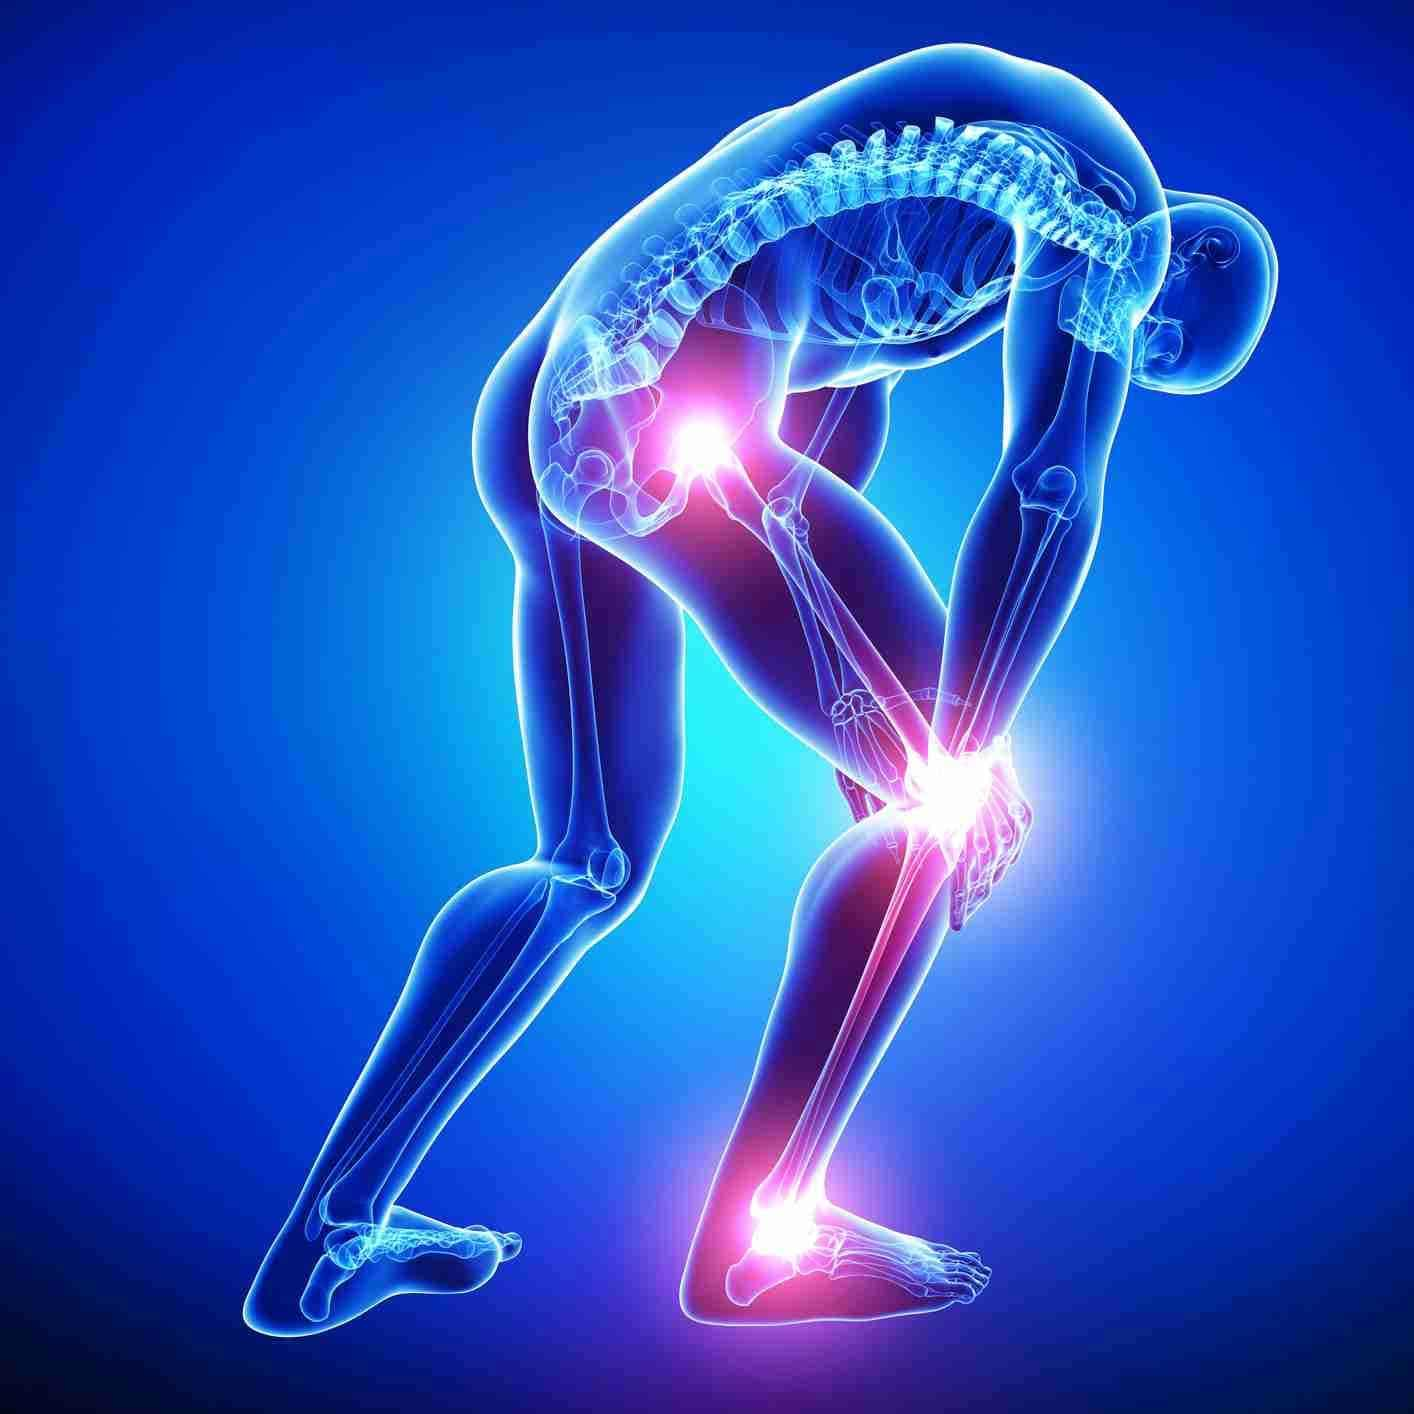 pain from joints in the body